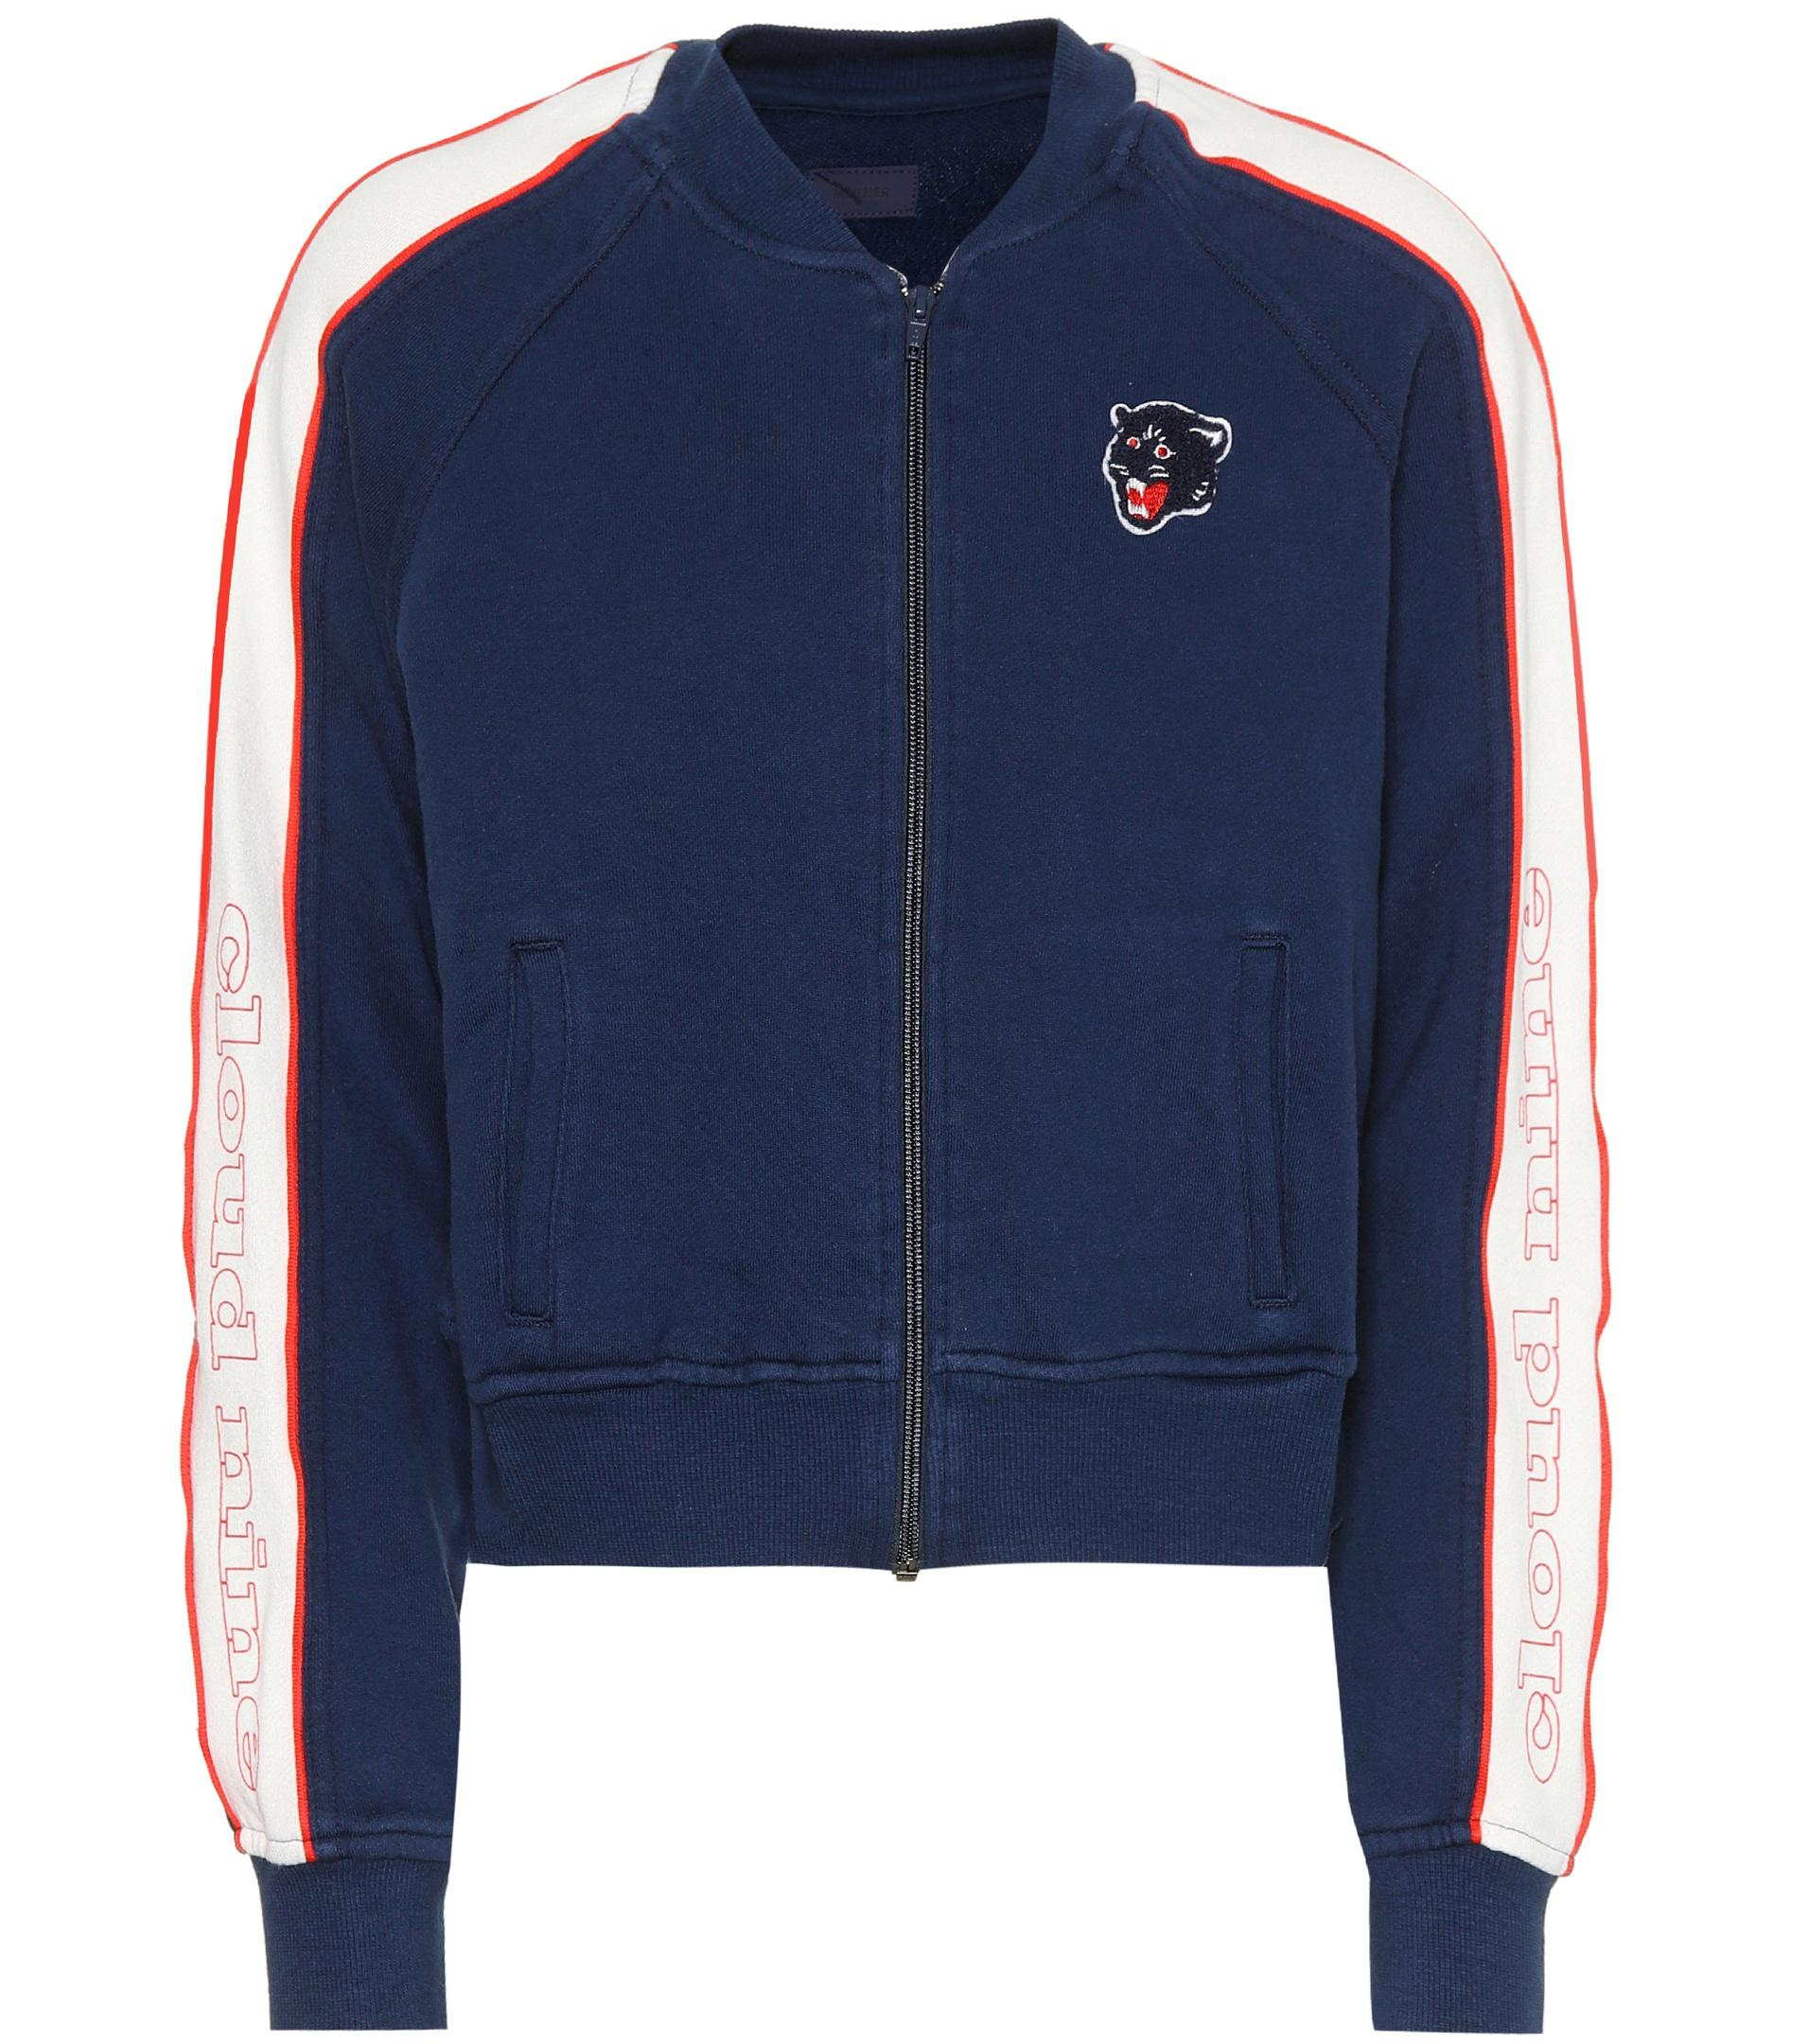 The Runner cotton jacket Mother Low Shipping Fee Authentic Sale Online Cheap Sale Cheapest pIWQc